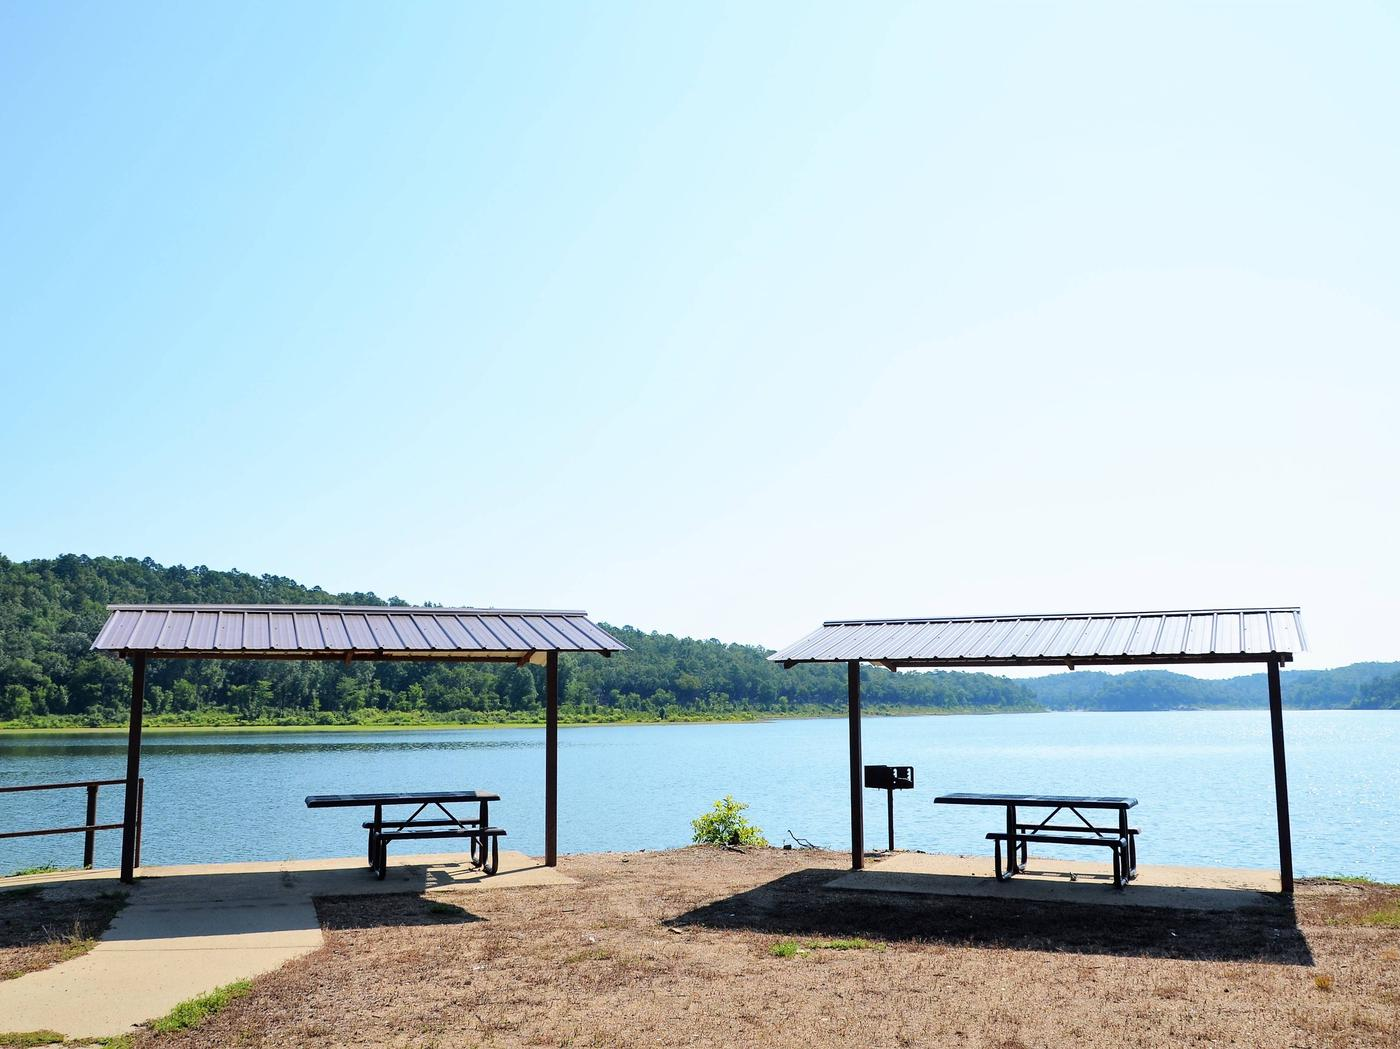 Gillham Lake Little Coon Creek Park Day Use